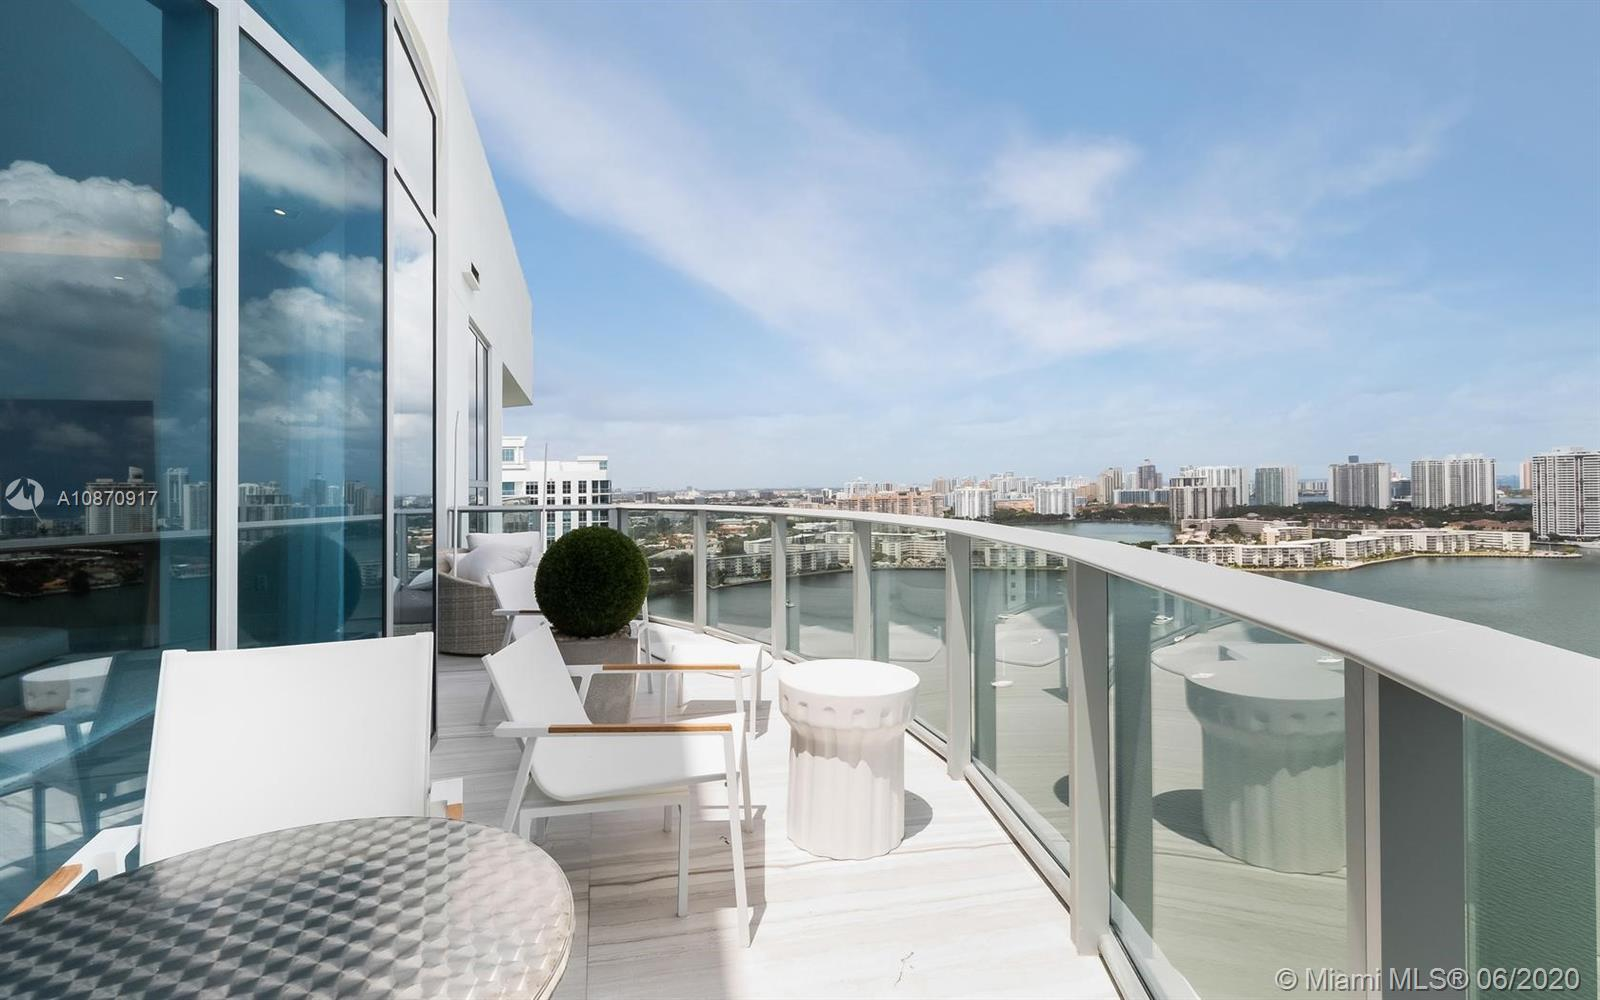 17111 Biscayne Blvd, Unit #PH8 Luxury Real Estate